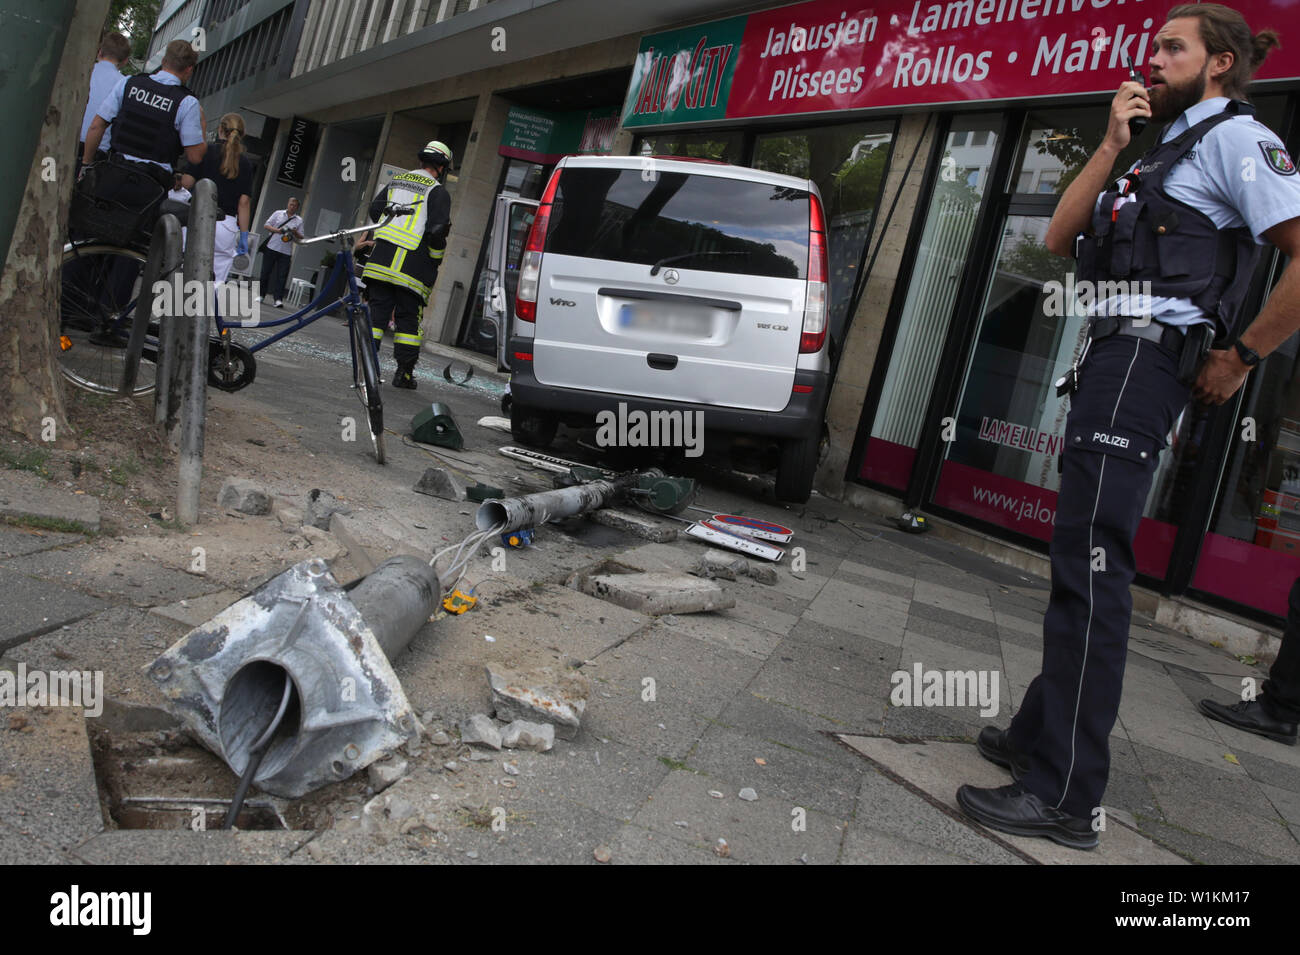 03 July 2019, North Rhine-Westphalia, Duesseldorf: A car is standing in a shop window after an accident in Düsseldorf. For reasons unknown so far, the car in the city centre has gone off the road and driven into a shop window. Photo: Martin Gerten/dpa - ATTENTION: Indicator was pixelated for legal reasons - Stock Image